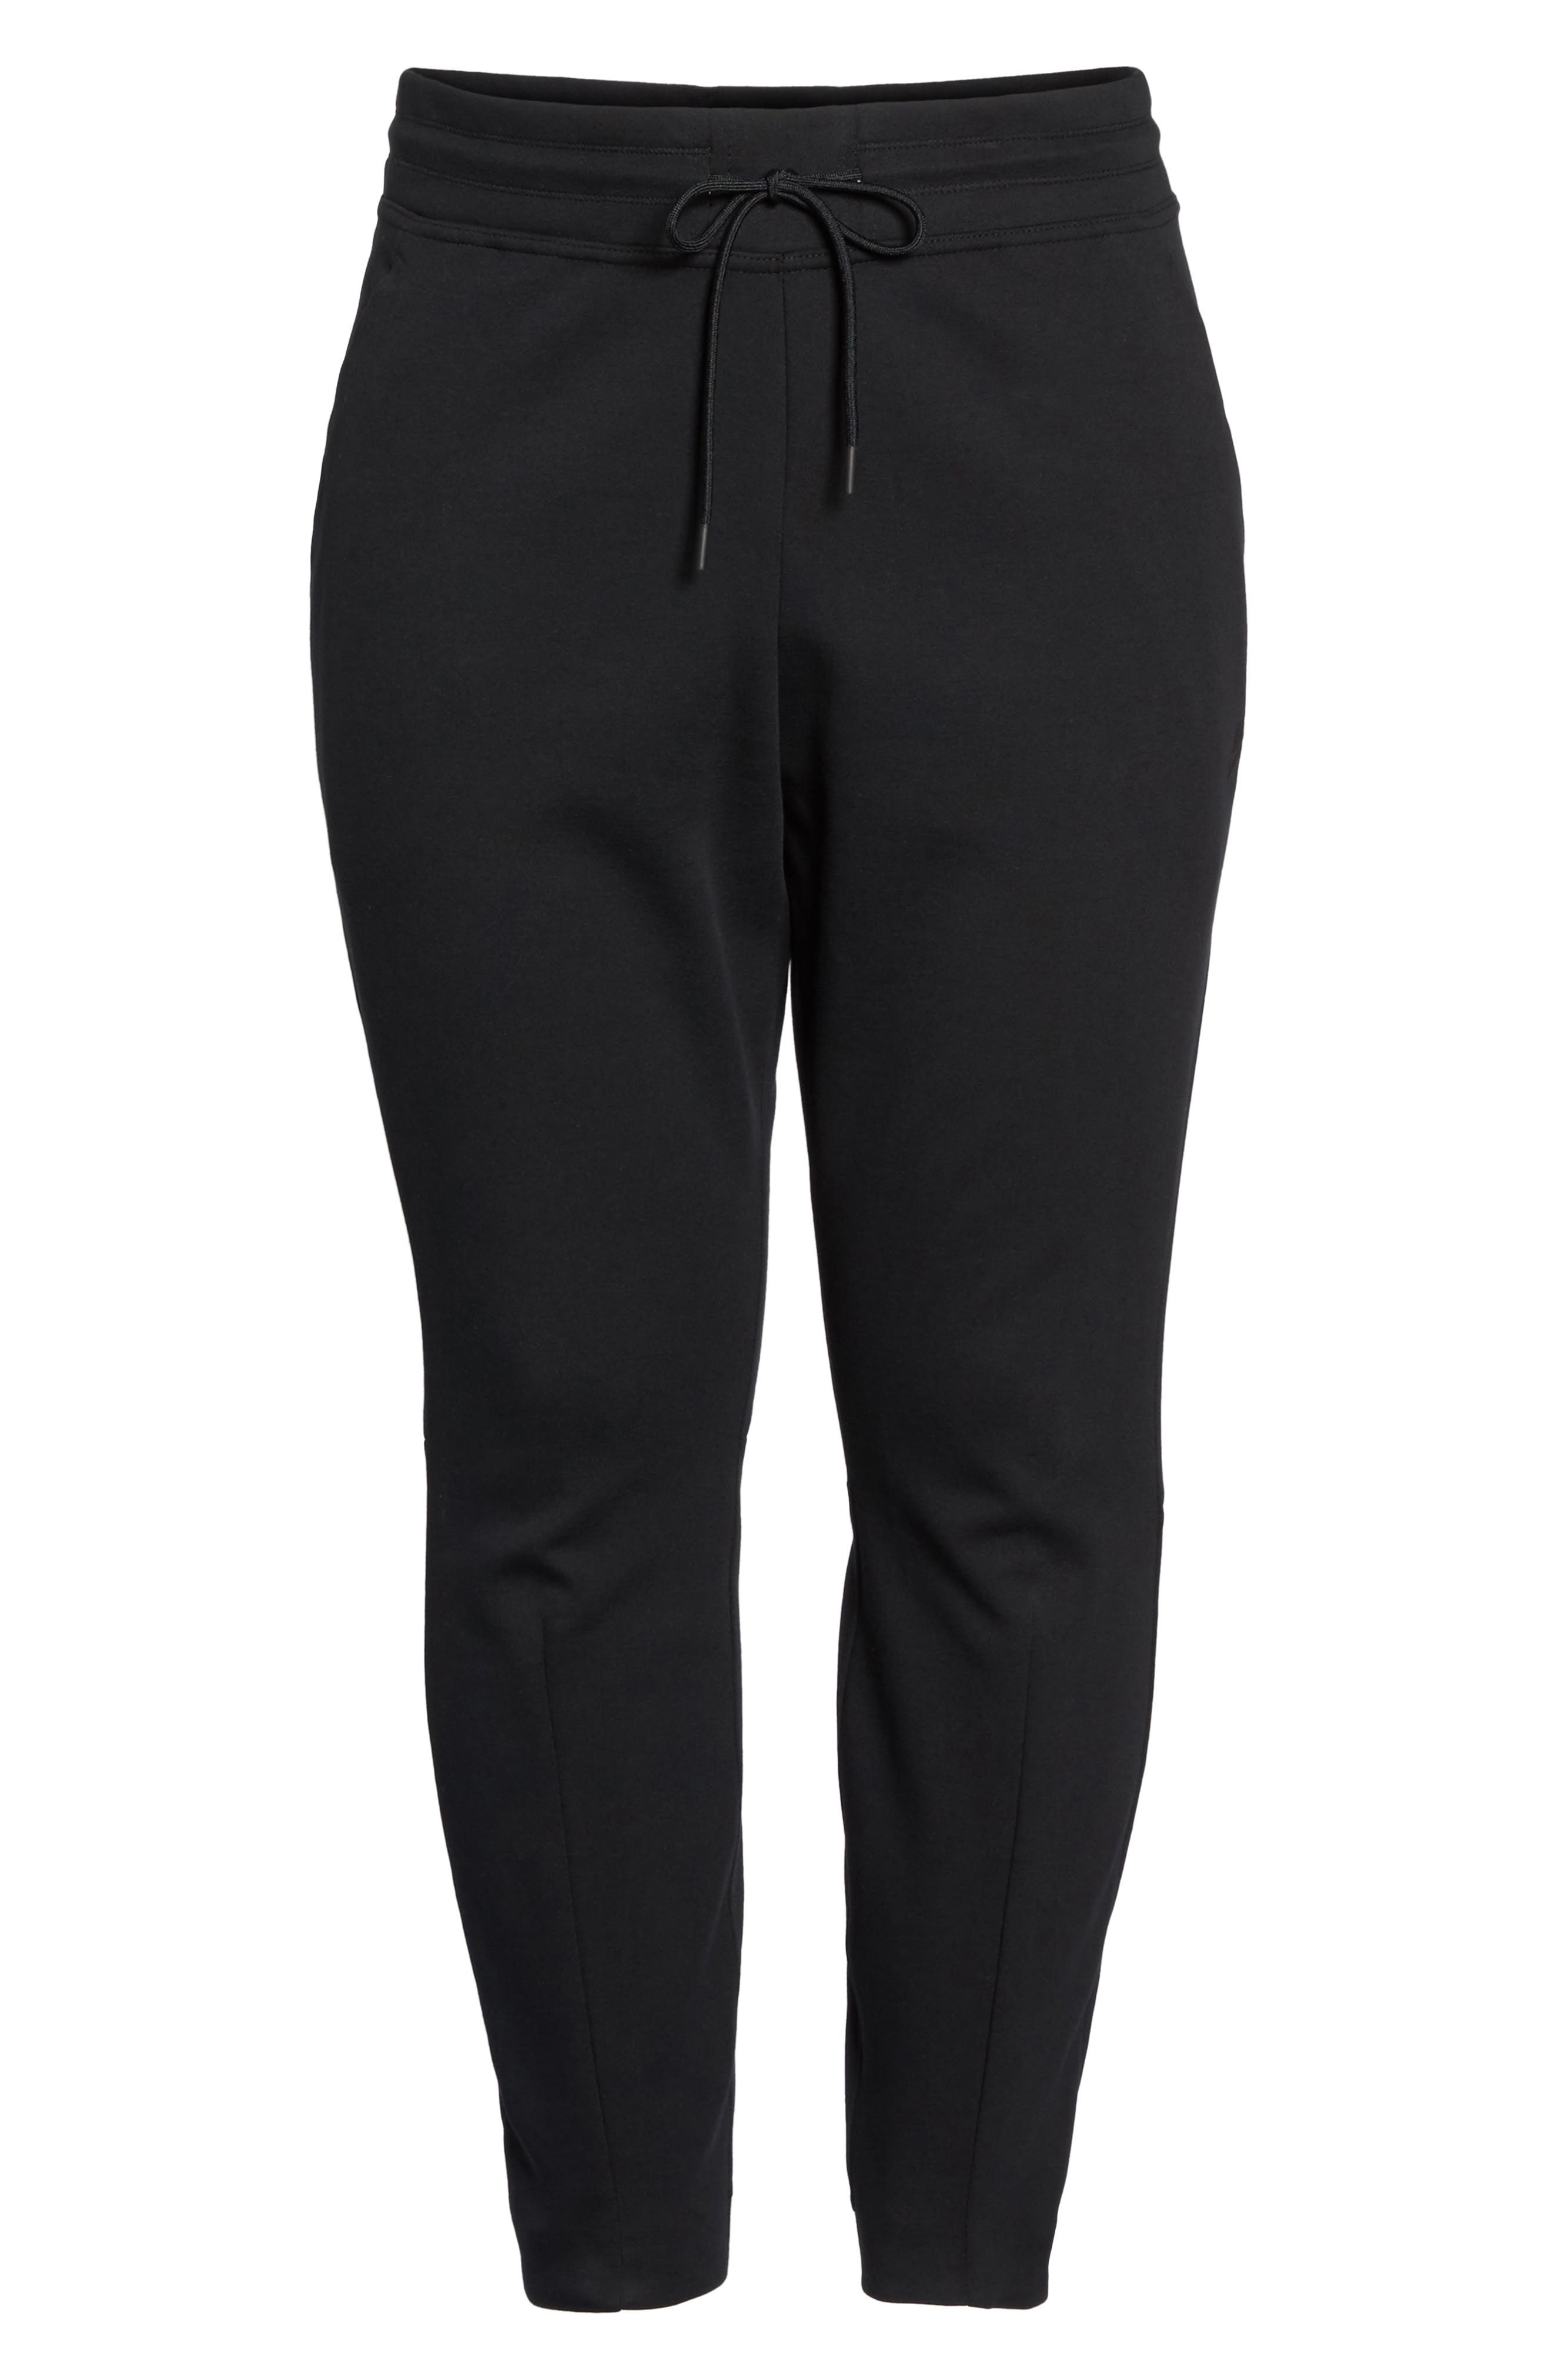 Tech Fleece Jogger Pants,                             Alternate thumbnail 6, color,                             Black/ Black